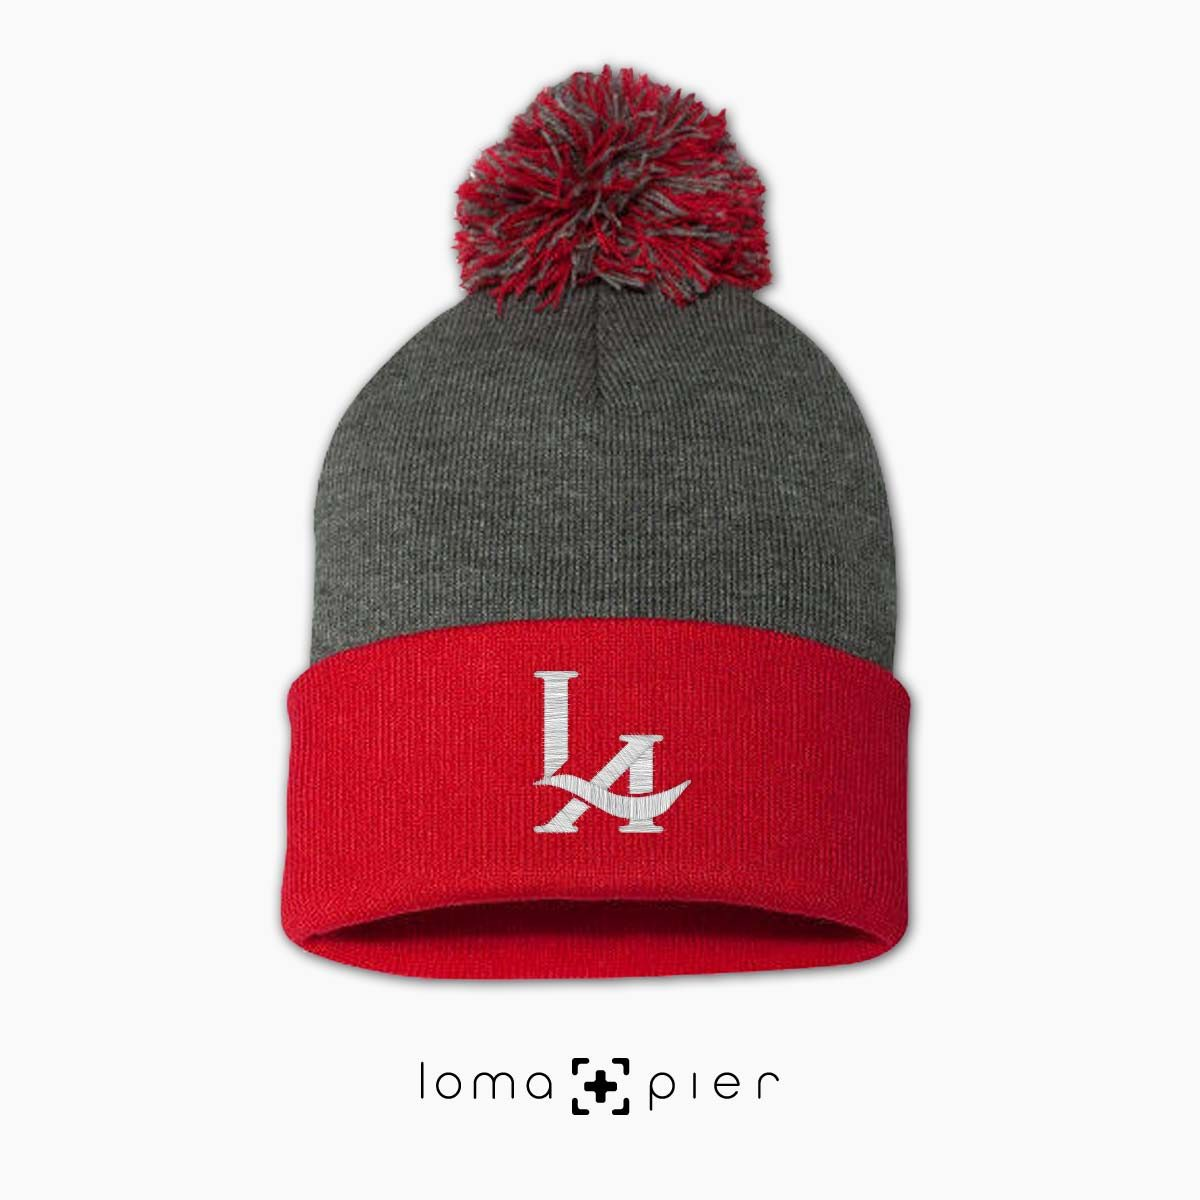 los angeles LA LOGO icon embroidered on a grey red pom pom beanie by loma+pier hat store